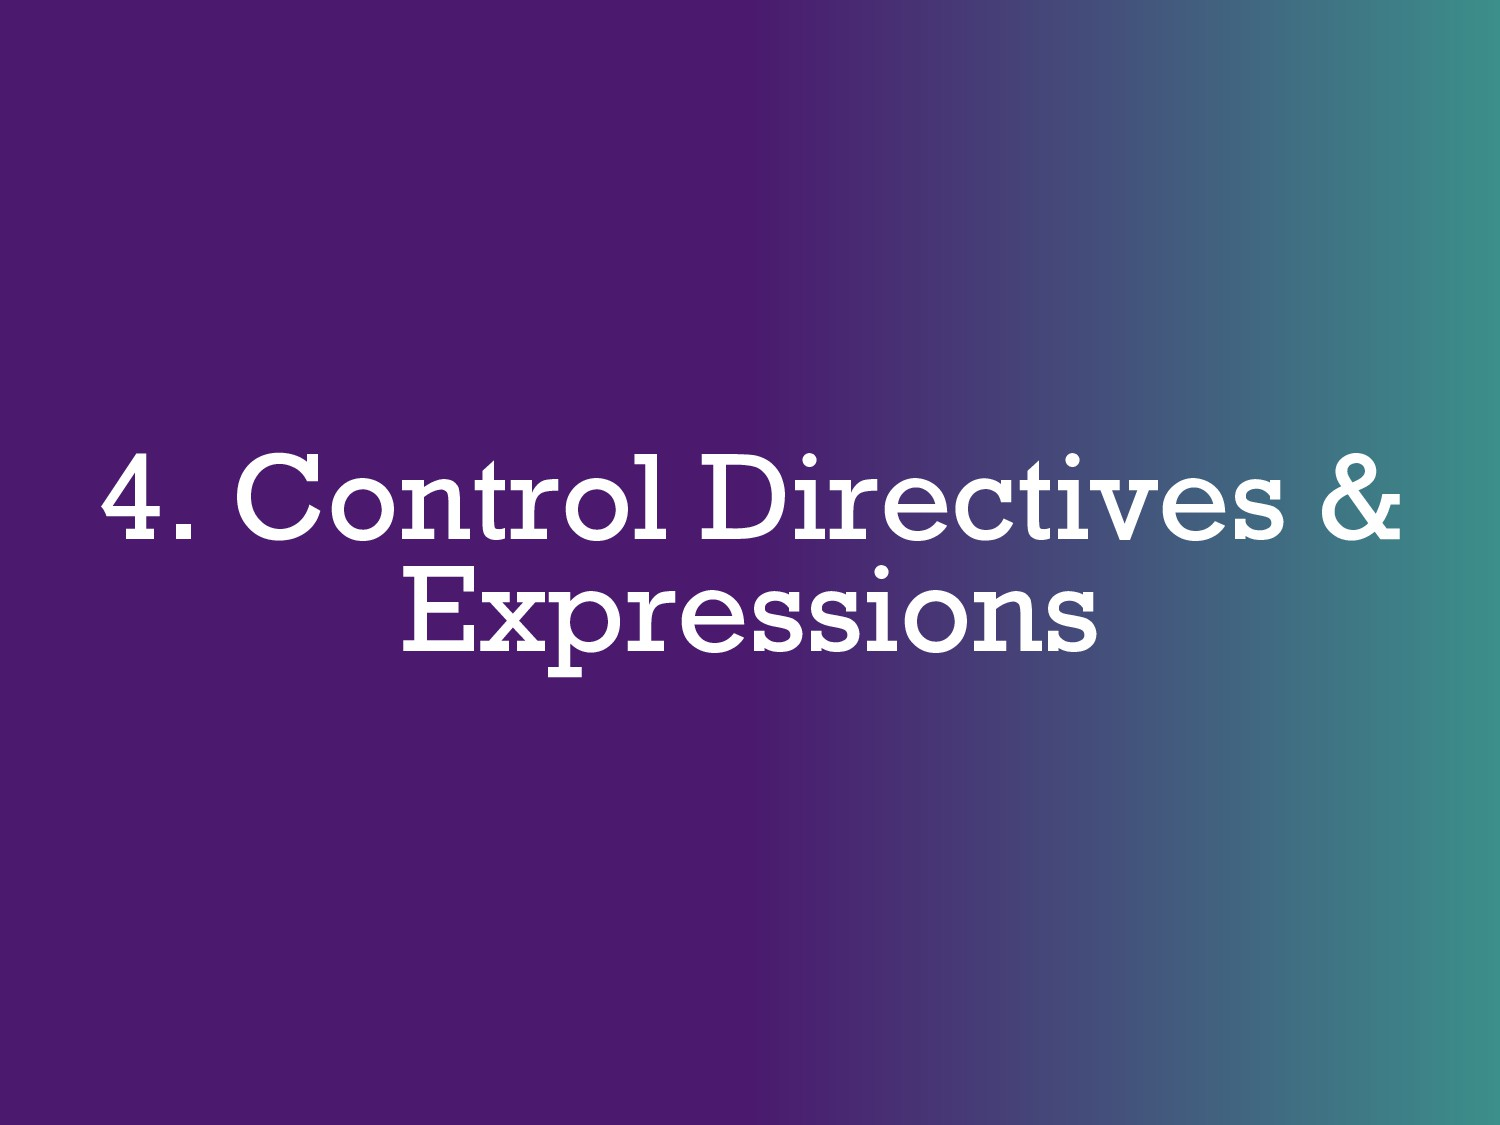 4. Control Directives & Expressions